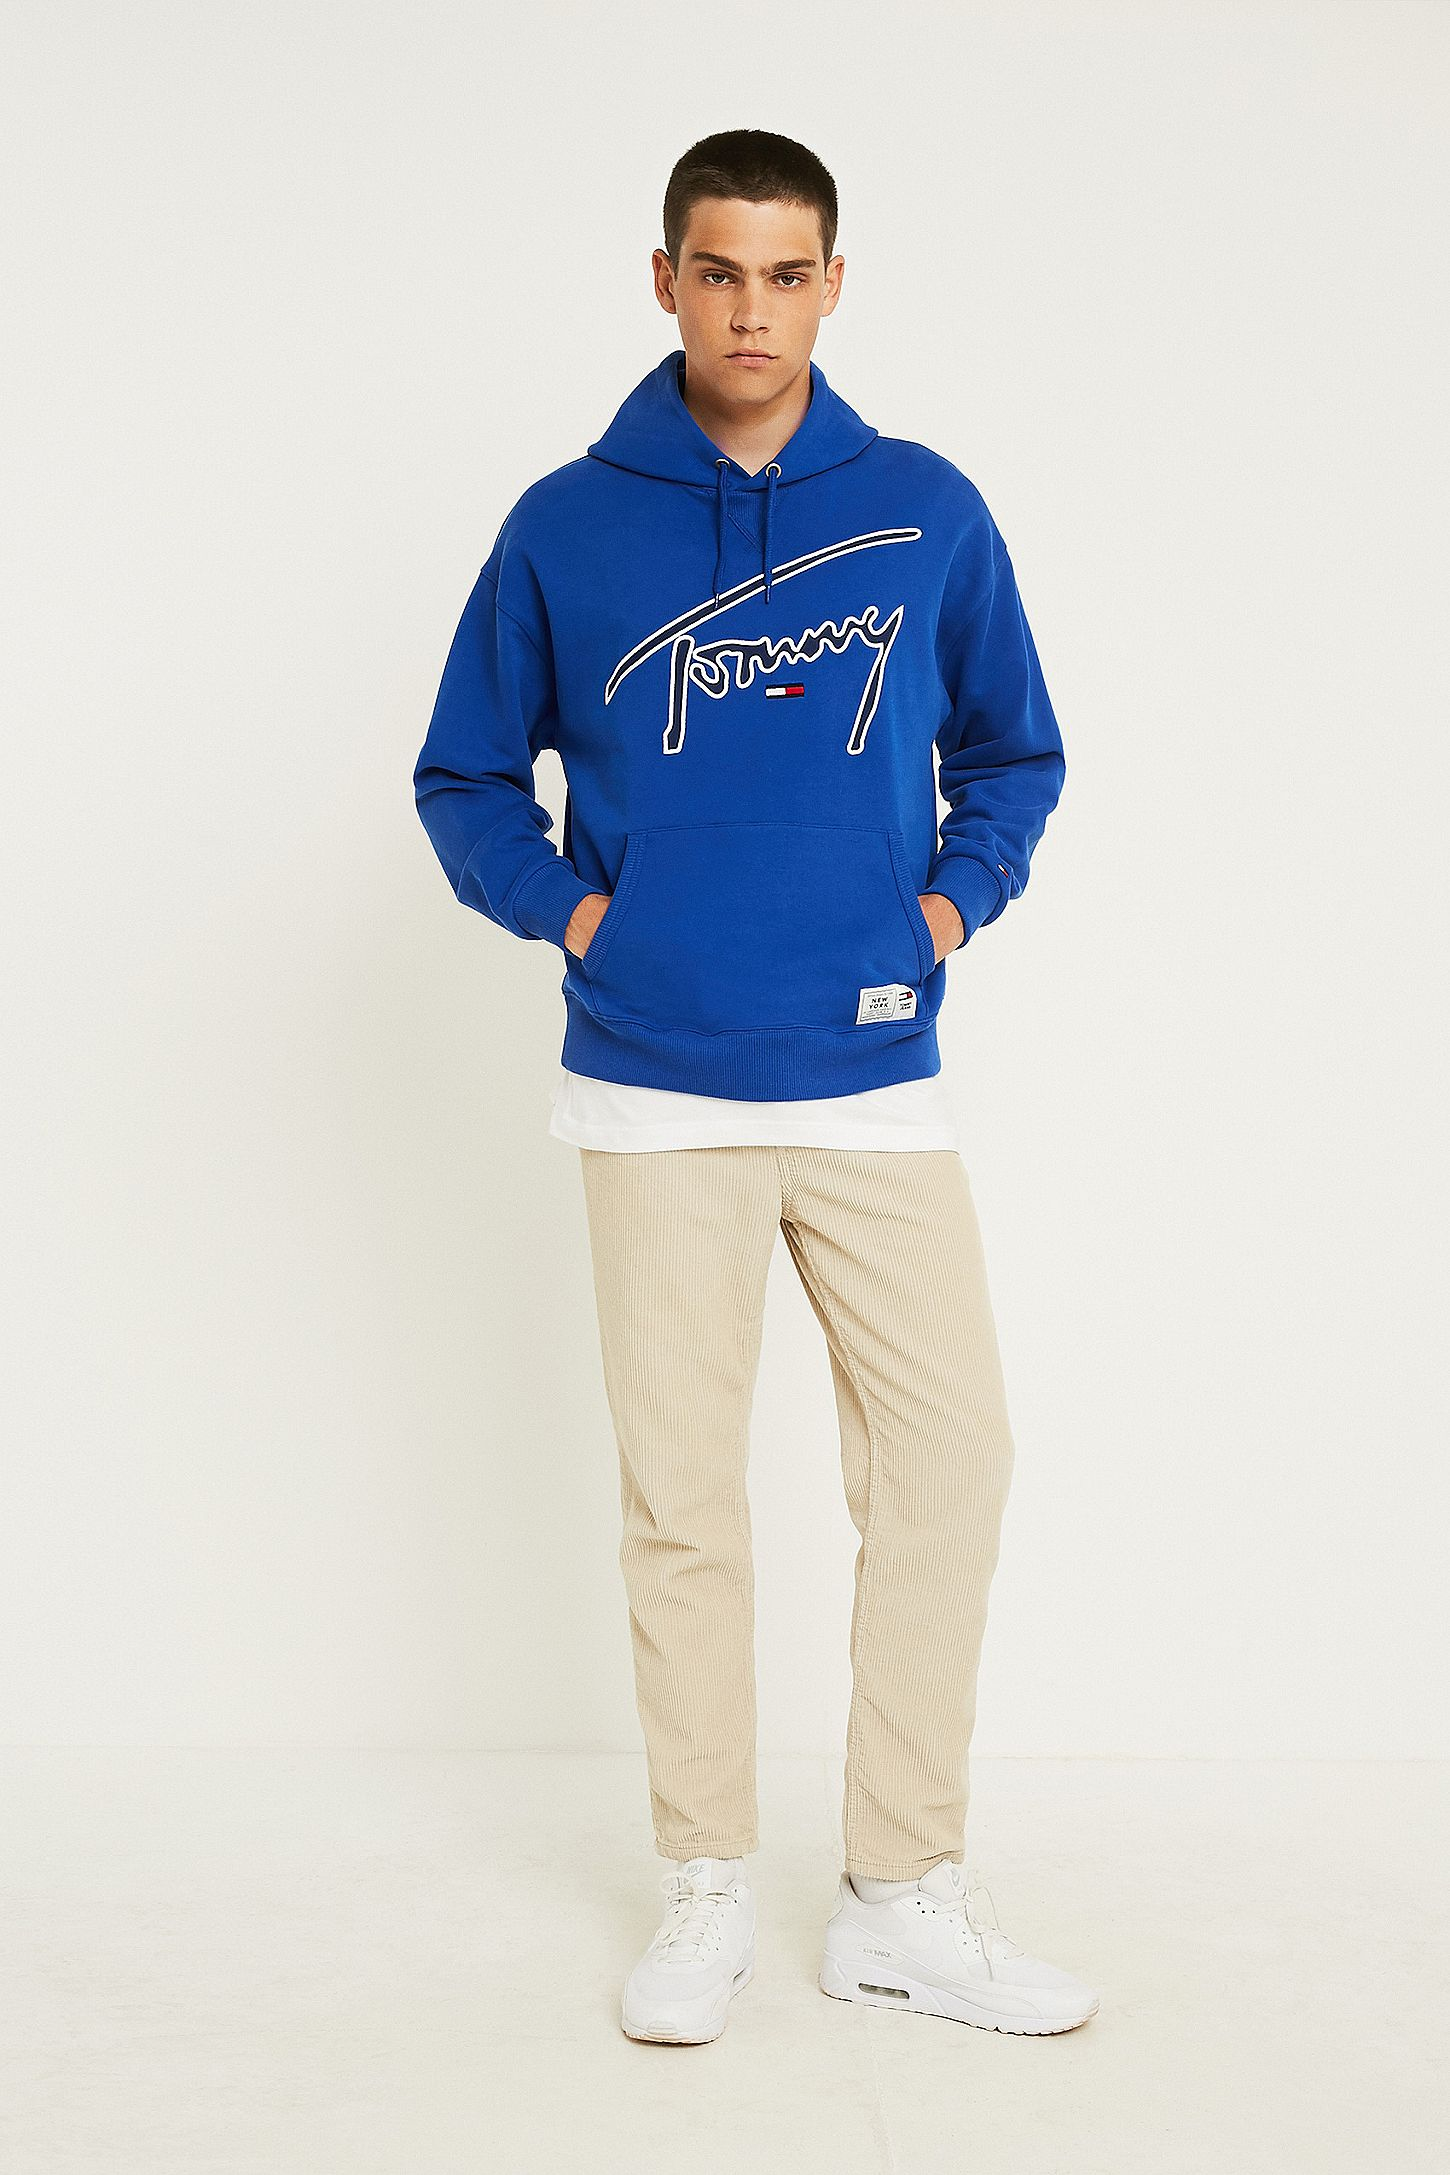 ce05c3478 Tommy Jeans Signature Blue Hoodie. Click on image to zoom. Hover to zoom.  Double Tap to Zoom